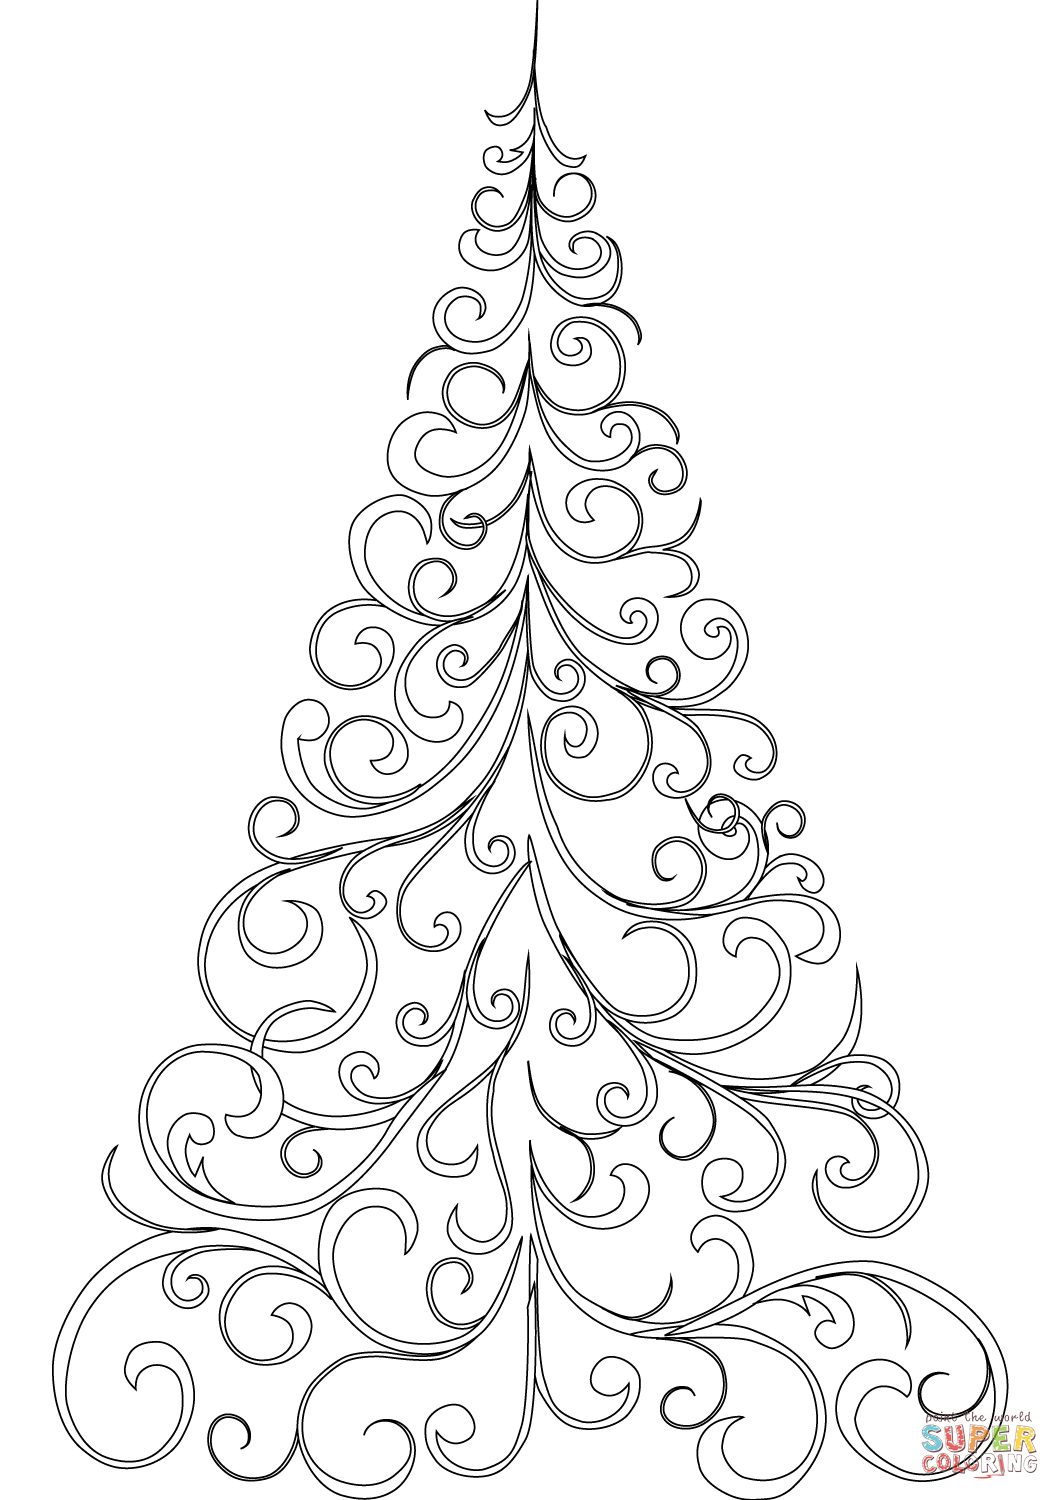 christmas tree drawing easy at getdrawings | free download